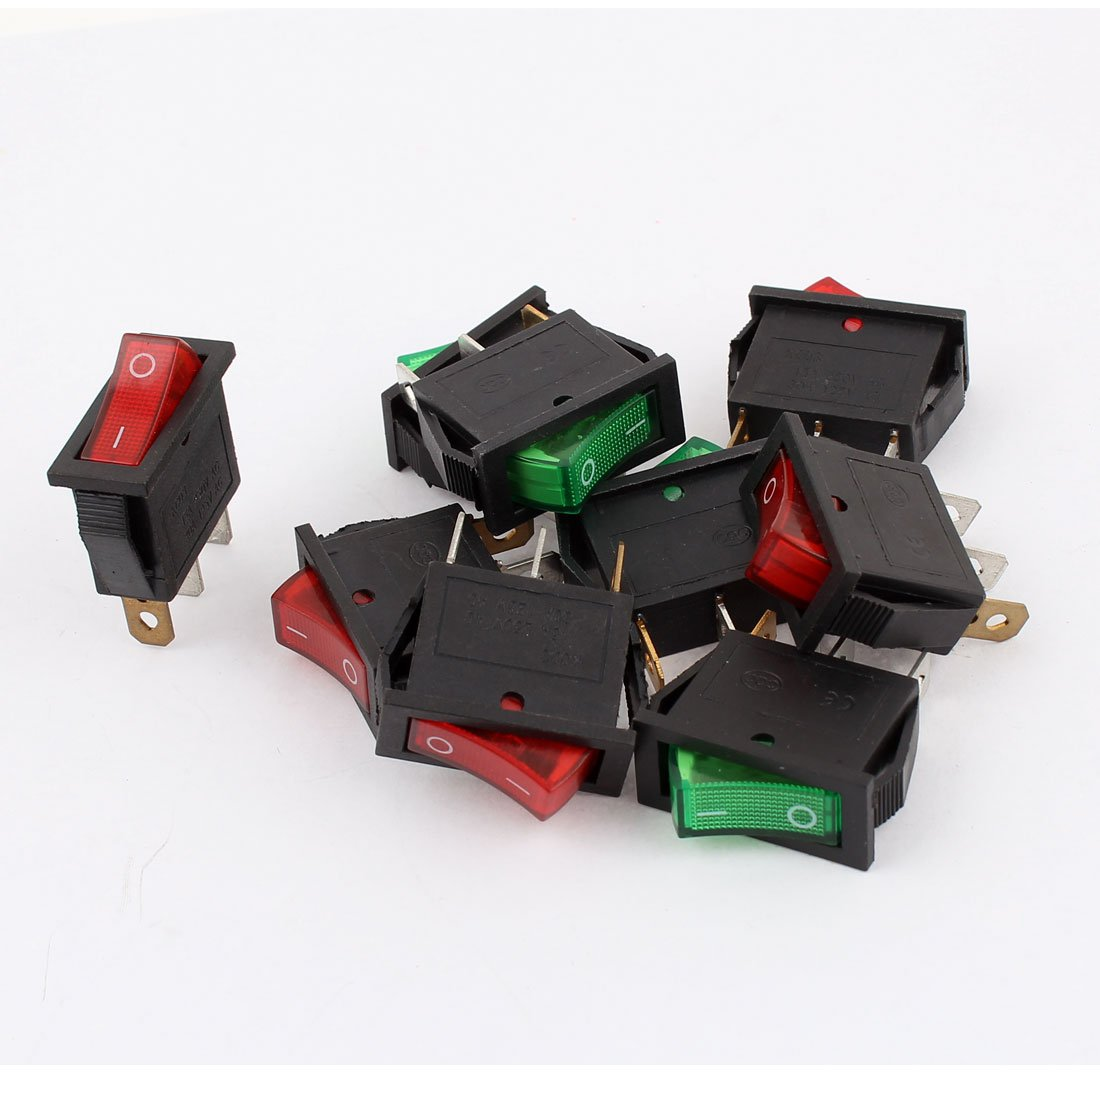 GFORTUN 10pcs Boat Rocker Switch 3 Pin SPST Red Light On//Off Round Snap in Rocker Switches AC 6A//250V 10A//125V for Household Appliances Controlling